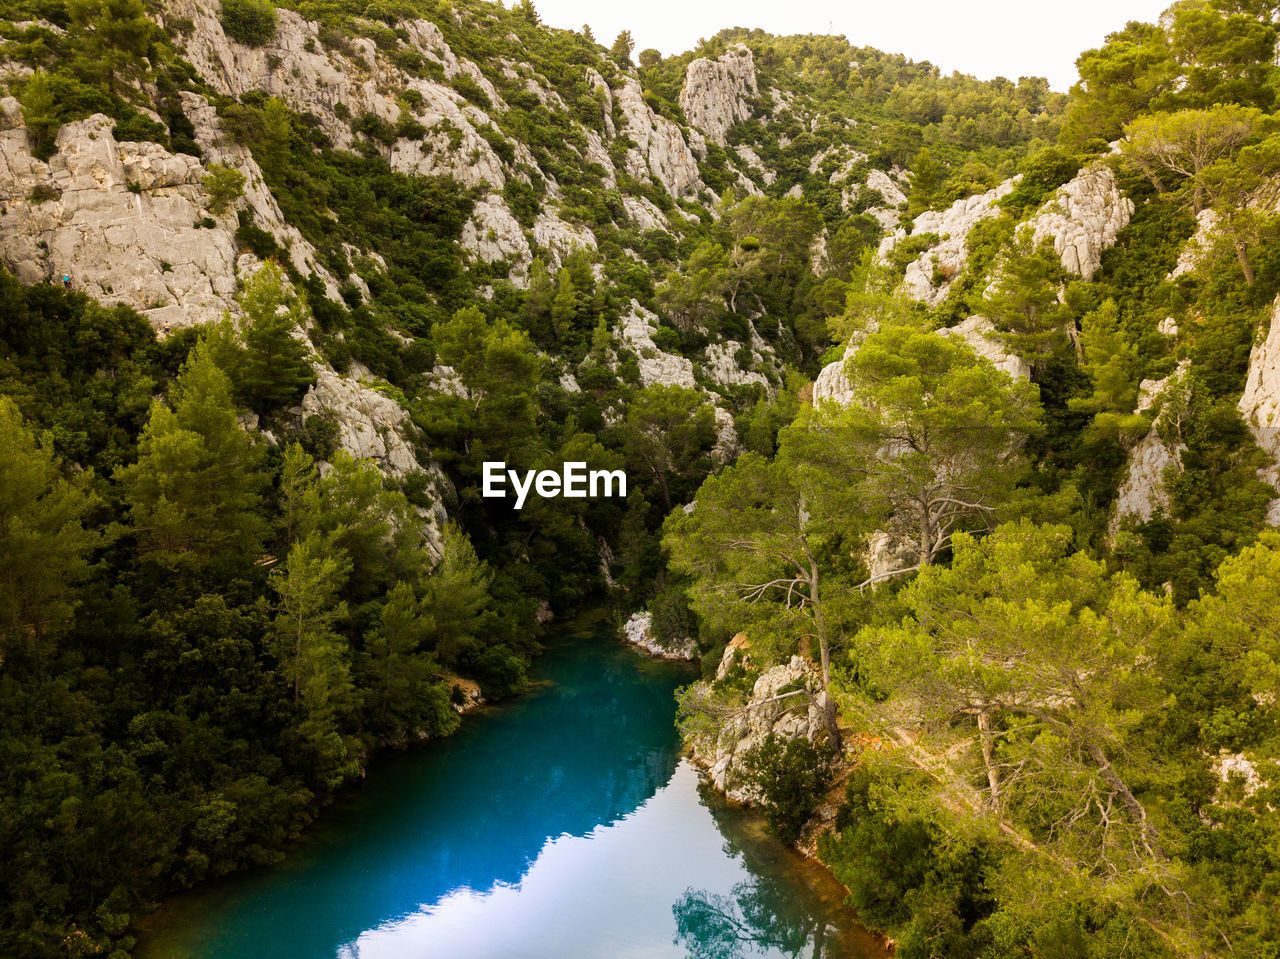 water, tree, plant, scenics - nature, beauty in nature, nature, no people, land, day, tranquility, tranquil scene, outdoors, green color, lake, rock, mountain, travel destinations, high angle view